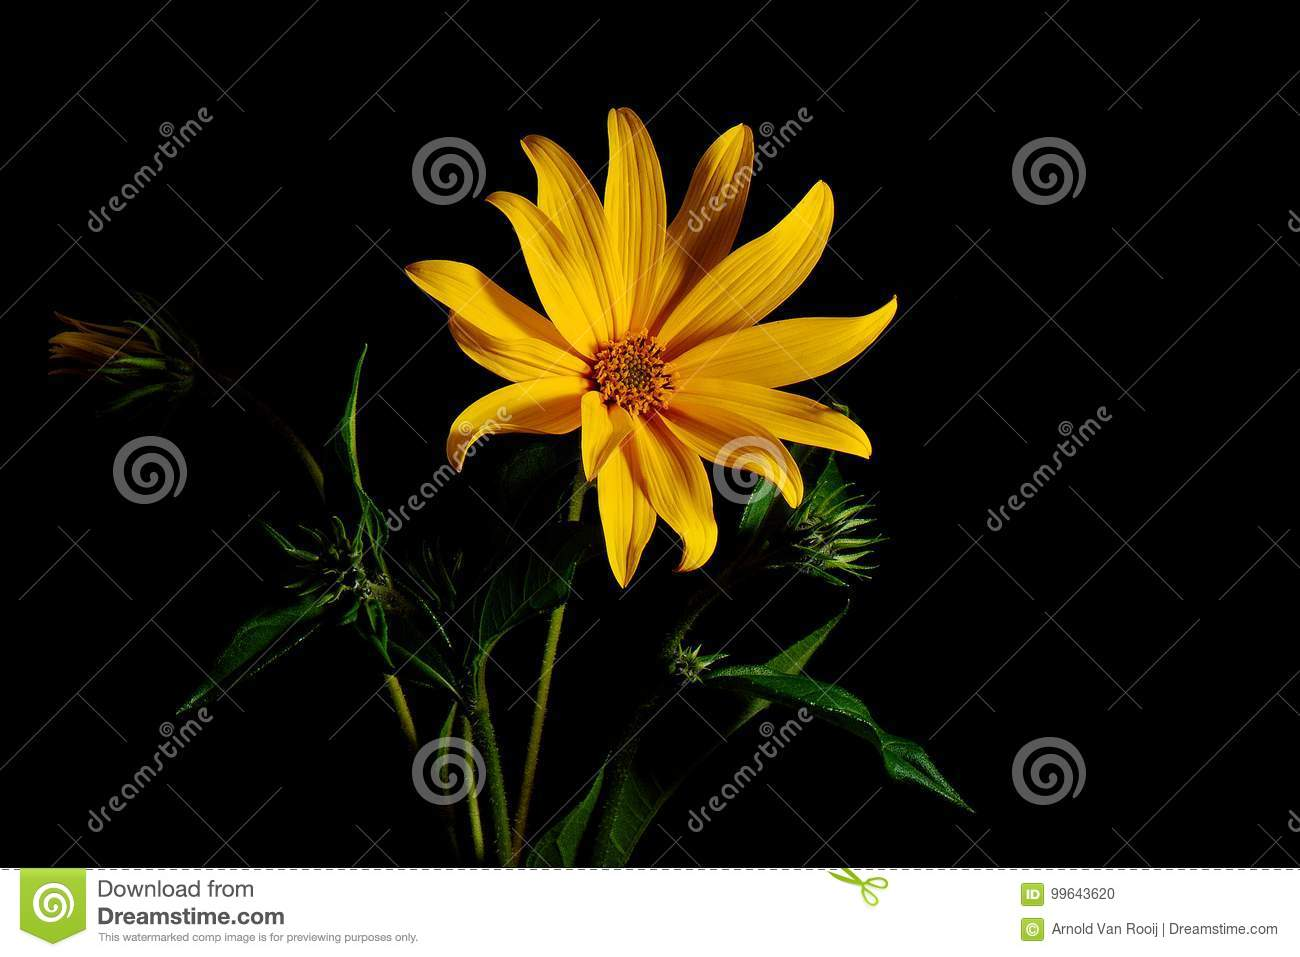 tuberosus de helianthus de fleur de topinambour photo stock image du pomme fond 99643620. Black Bedroom Furniture Sets. Home Design Ideas